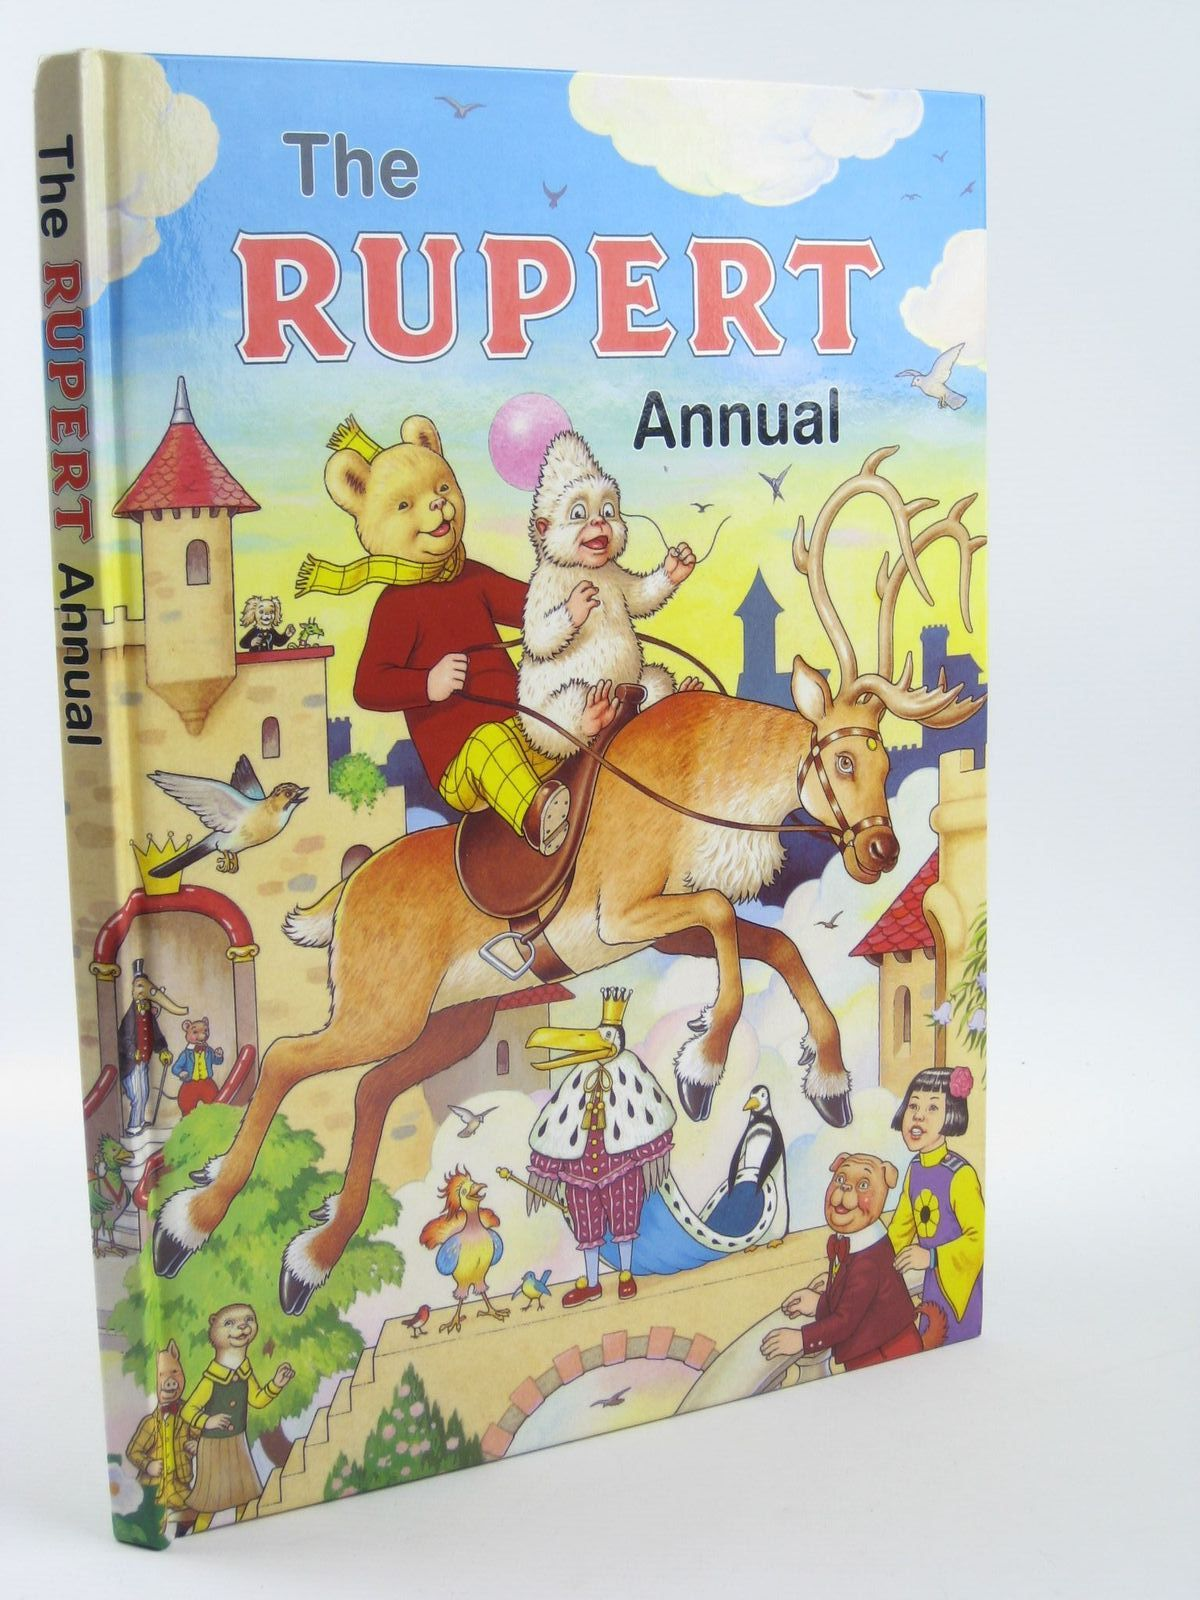 Photo of RUPERT ANNUAL 2006 written by Henderson, Jim illustrated by Harrold, John published by Express Newspapers Ltd. (STOCK CODE: 1311011)  for sale by Stella & Rose's Books